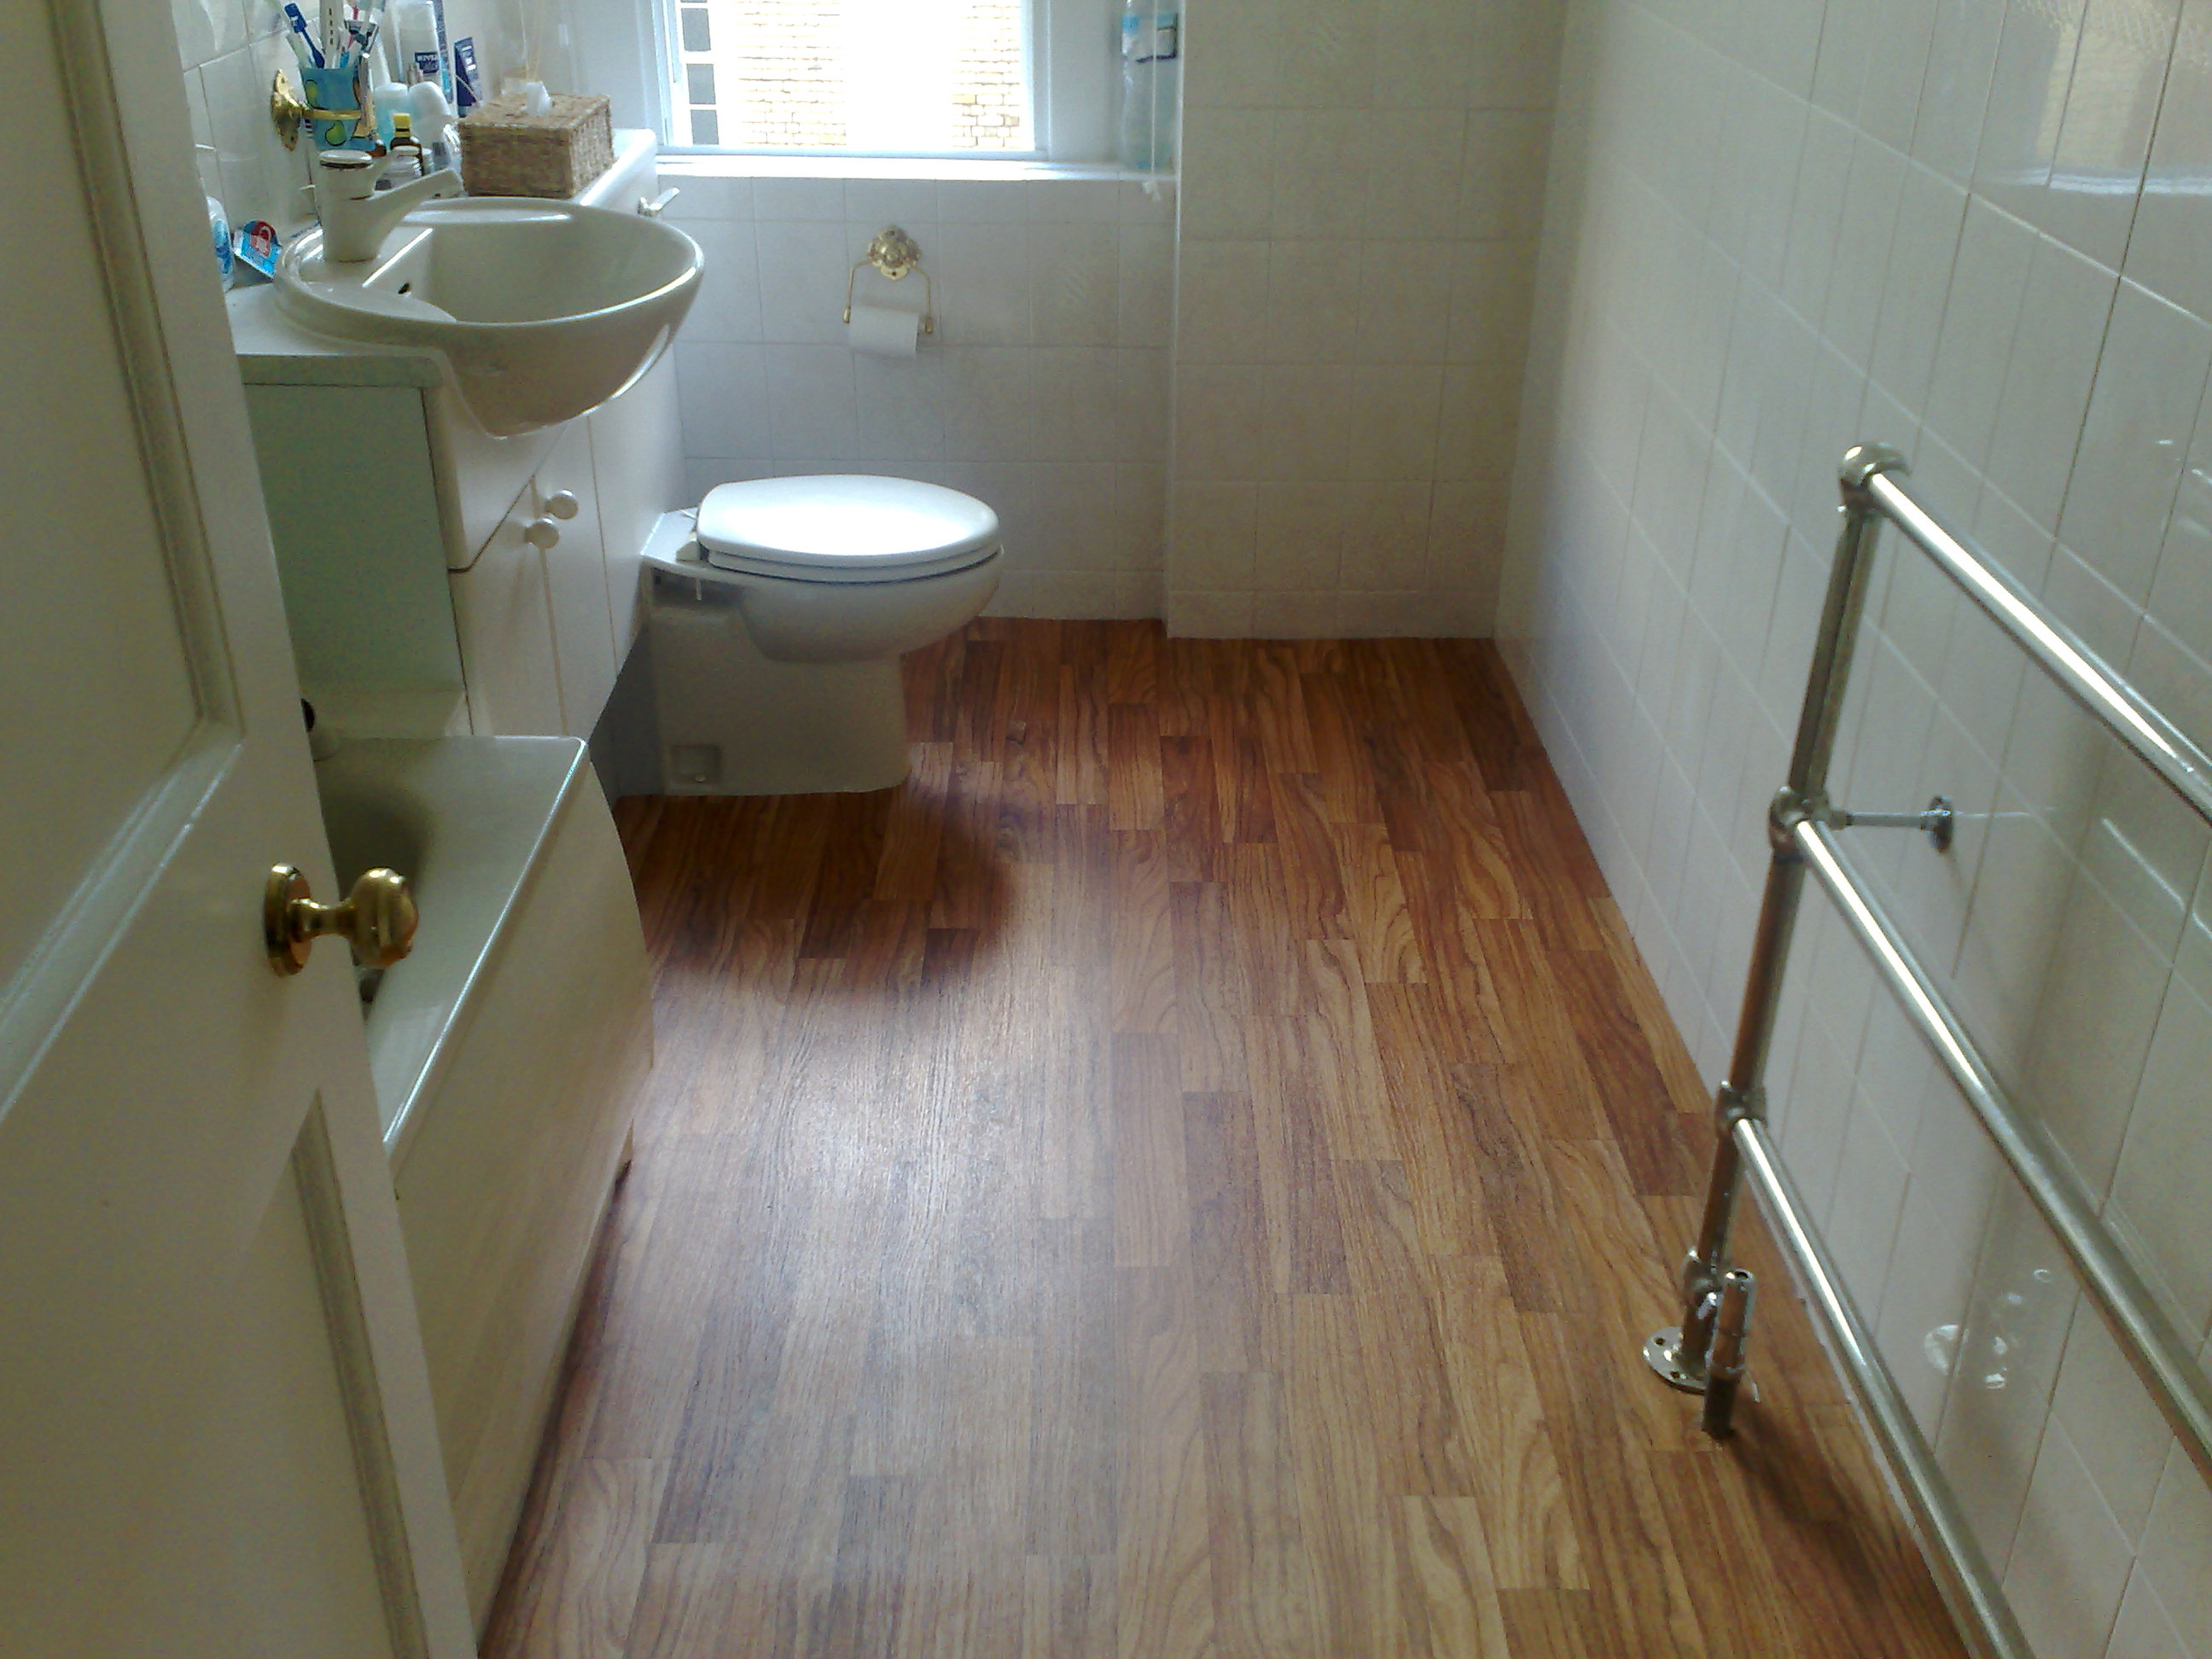 wood floors bathroom best 25+ wood floor bathroom ideas only on